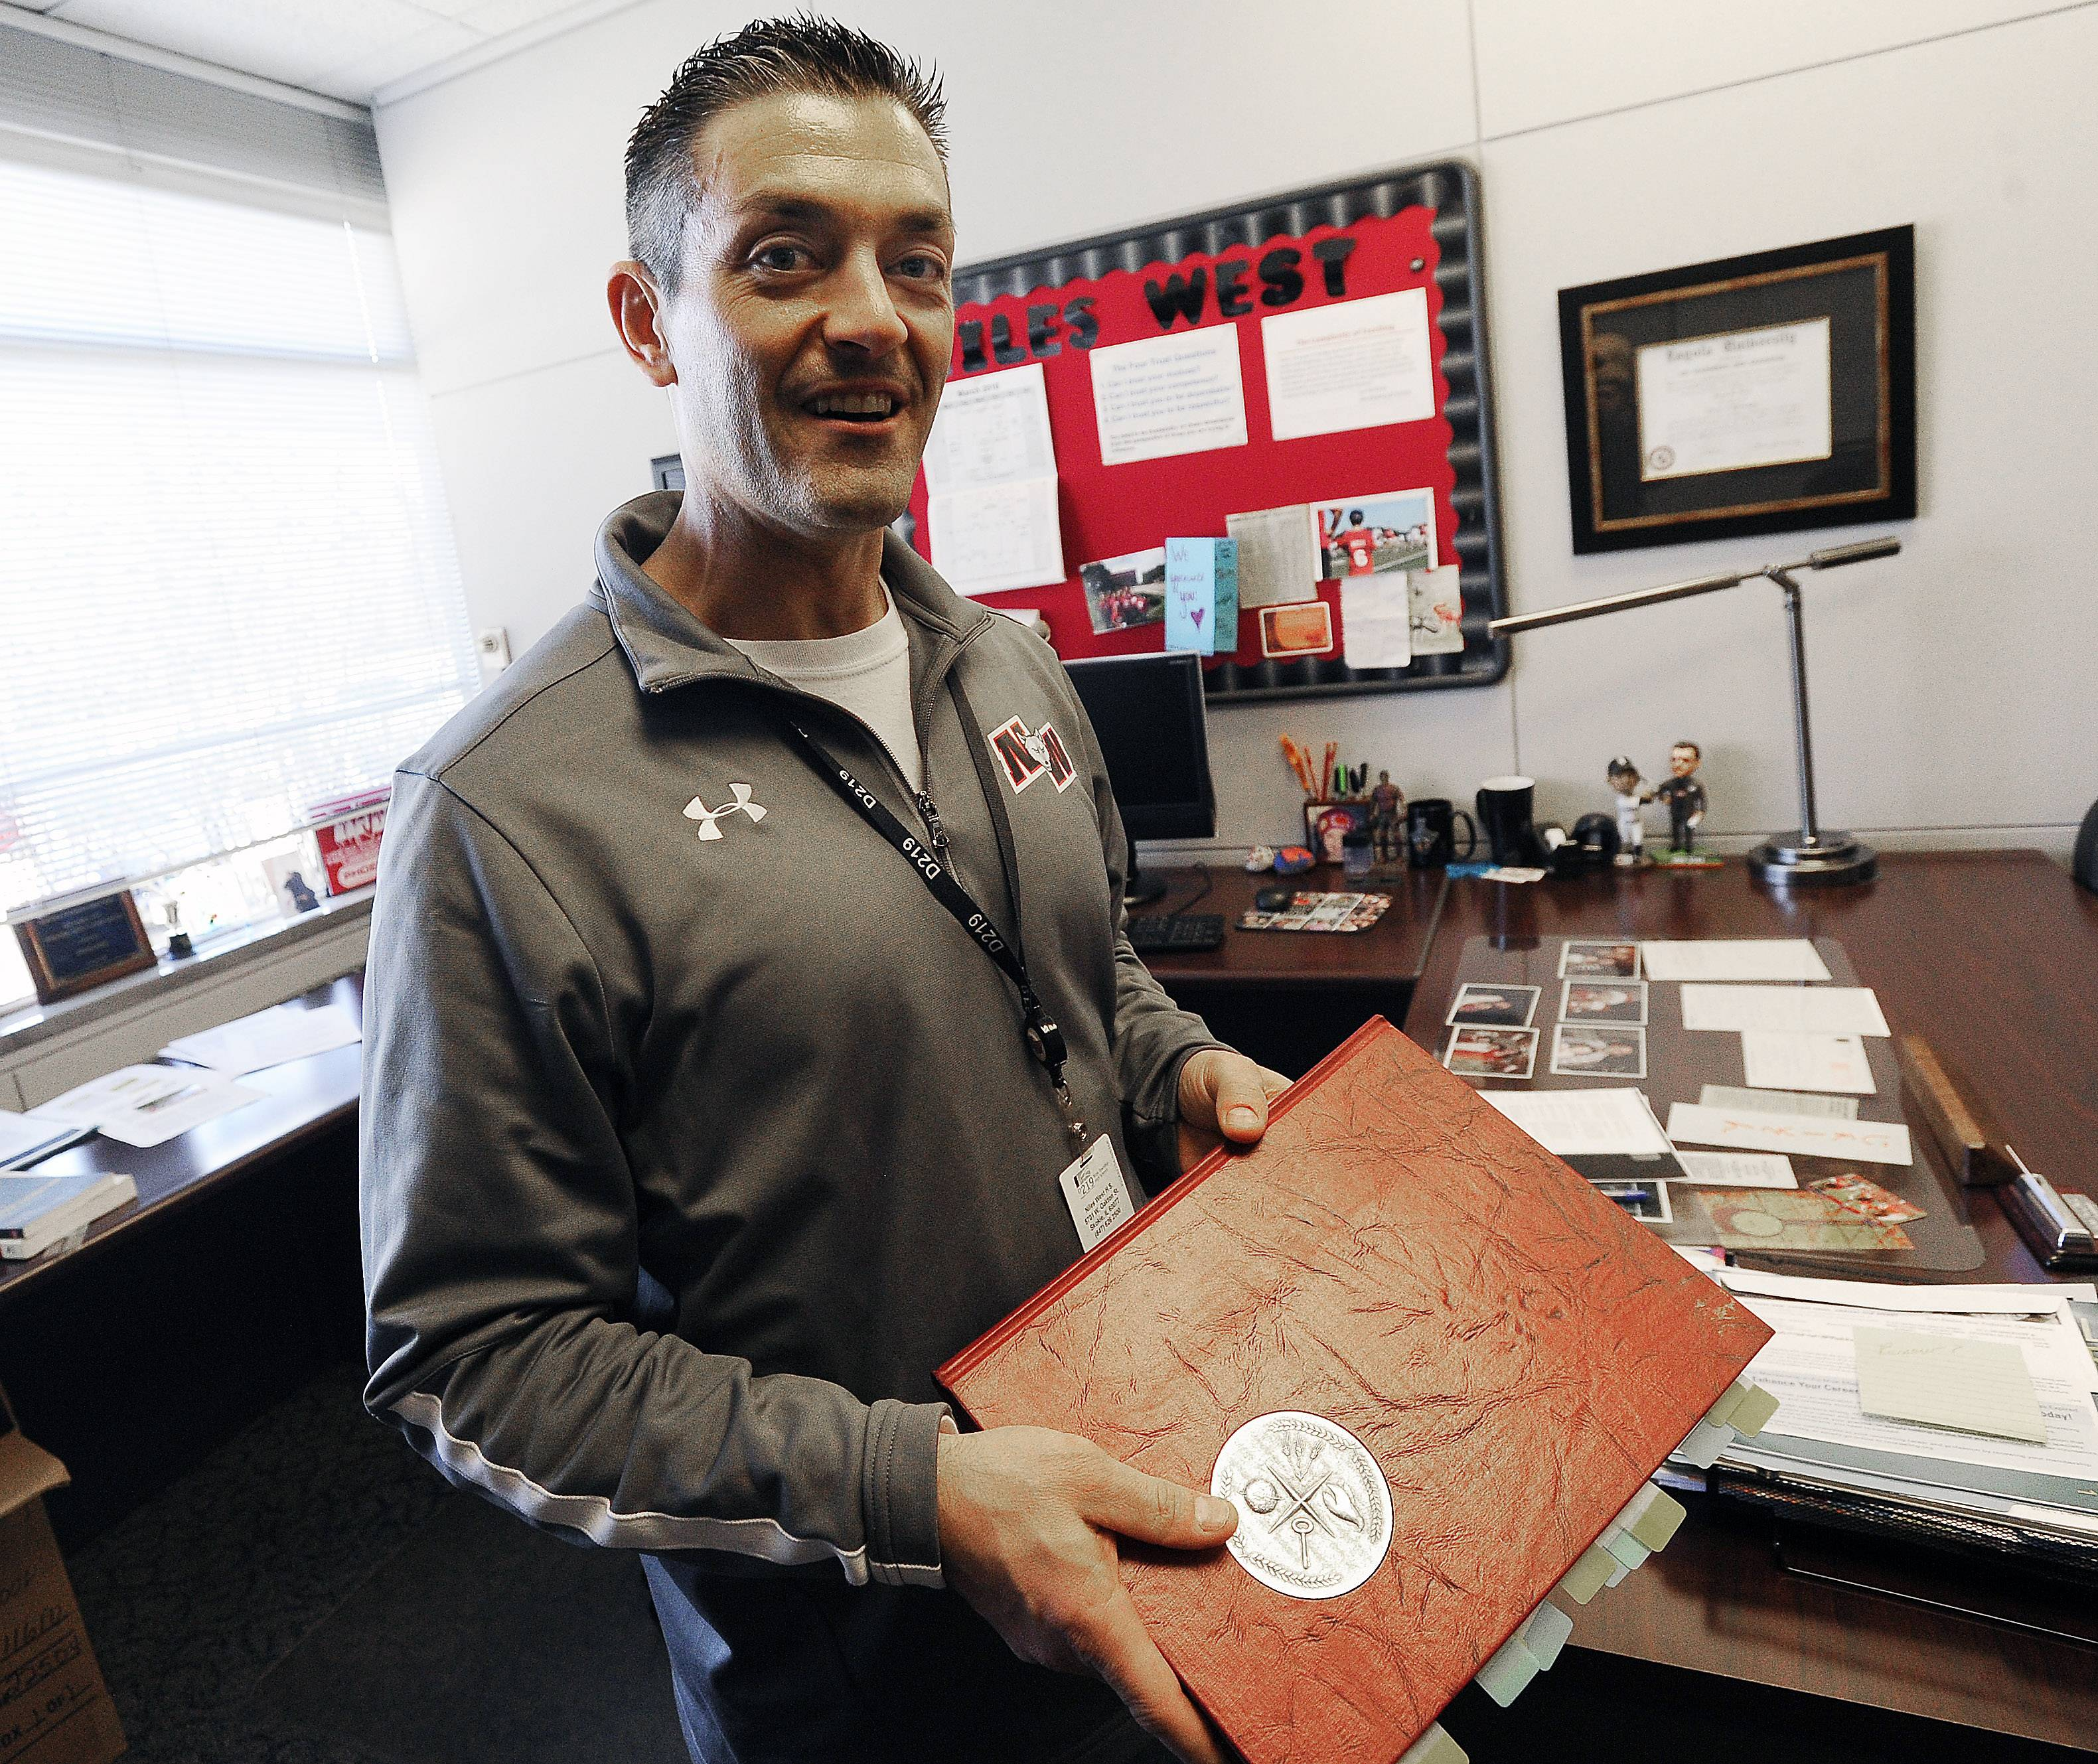 Niles West Principal Jason Ness talks Wednesday about the excitement over Merrick Garland, Niles West High School valedictorian in 1970, being selected by President Obama as his nominee to fill a vacancy on the Supreme Court.